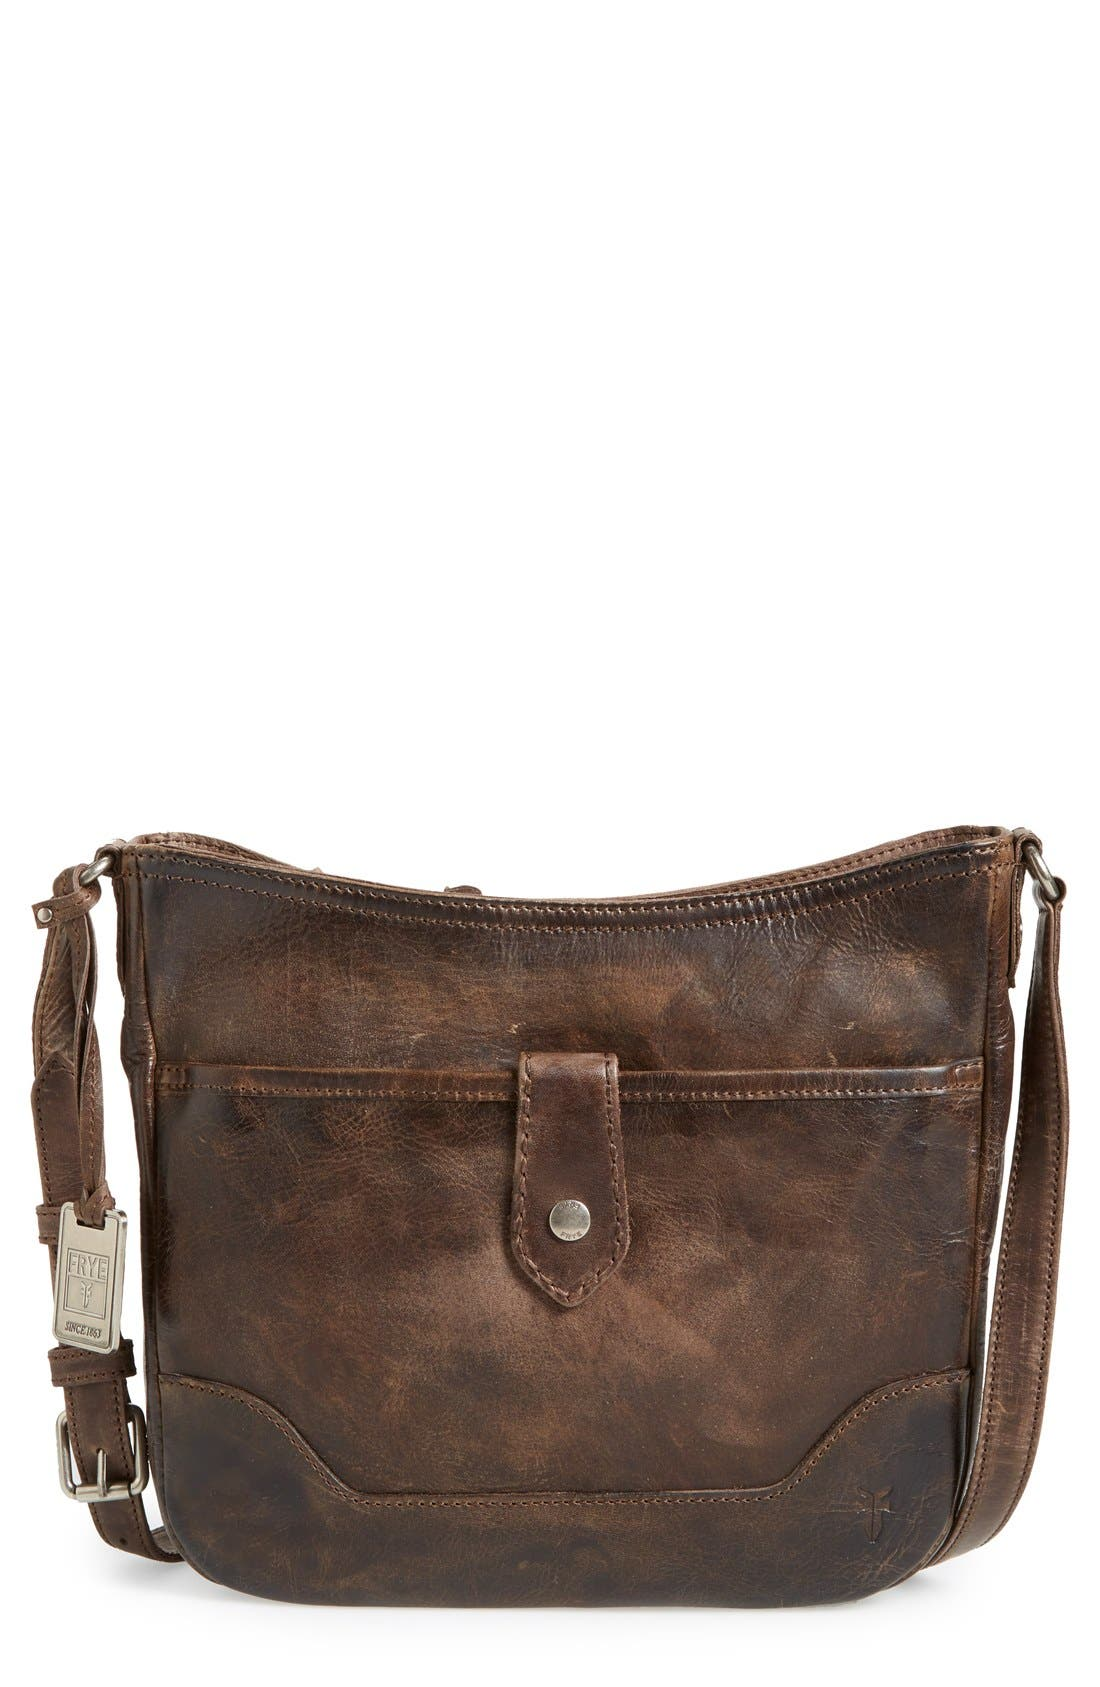 Alternate Image 1 Selected - Frye Melissa Button Crossbody Bag